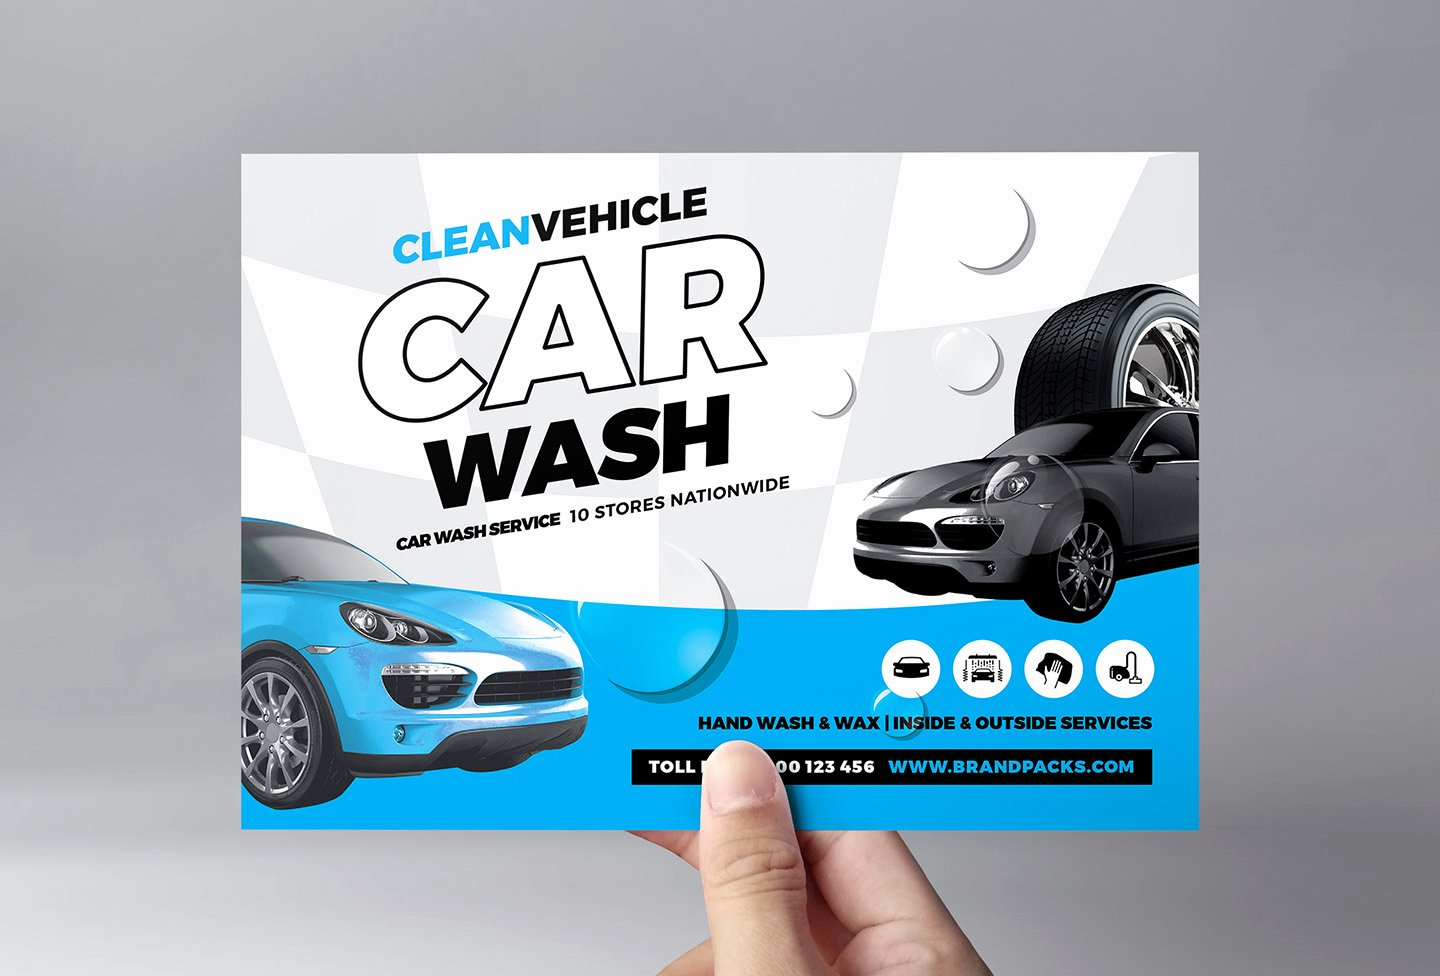 Car Wash Flyers Template Fresh Car Wash Flyer Template In Psd Ai & Vector Brandpacks